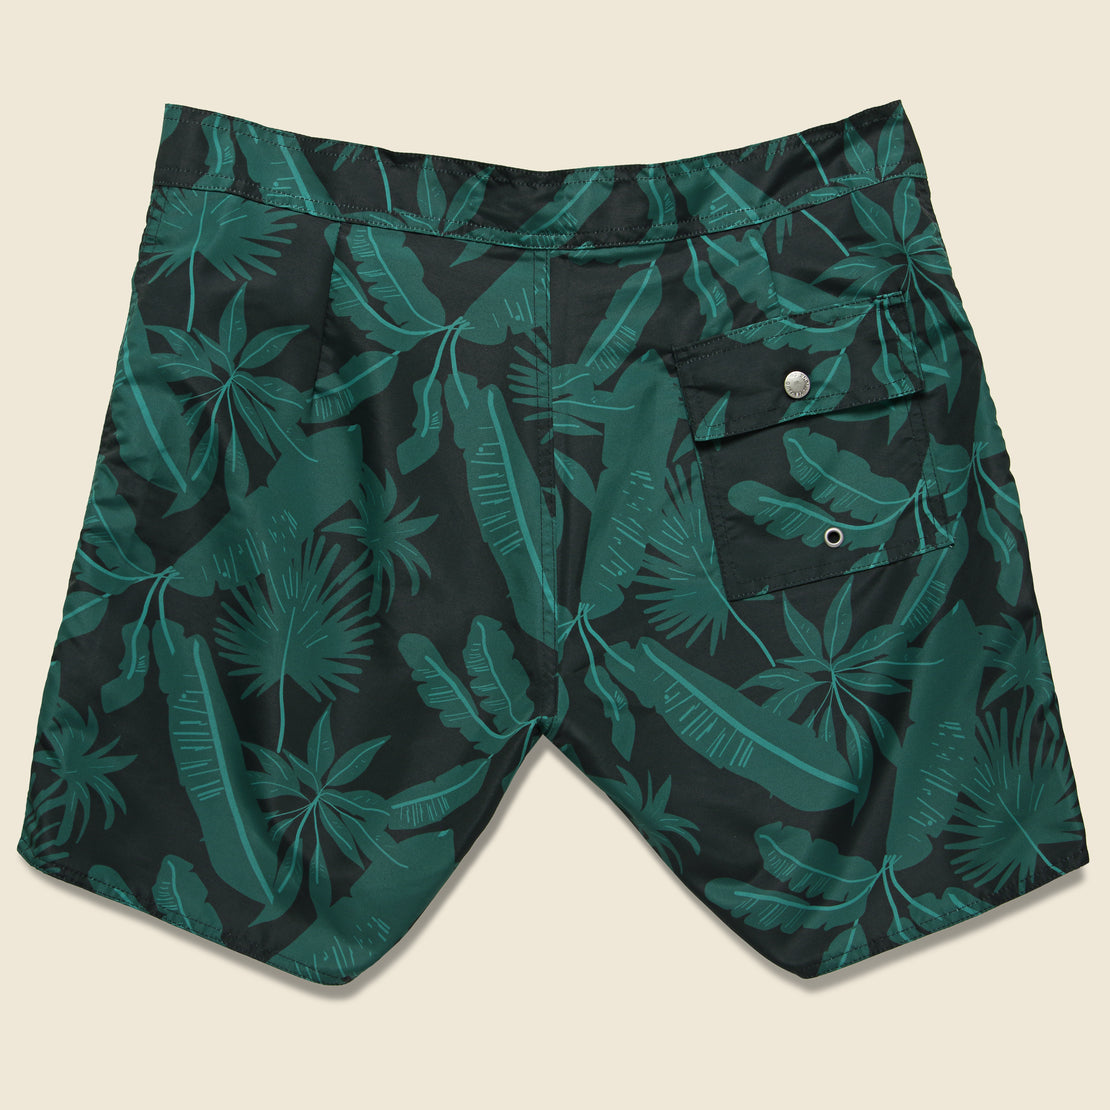 Tropical Palms Boardshort - Black/Green